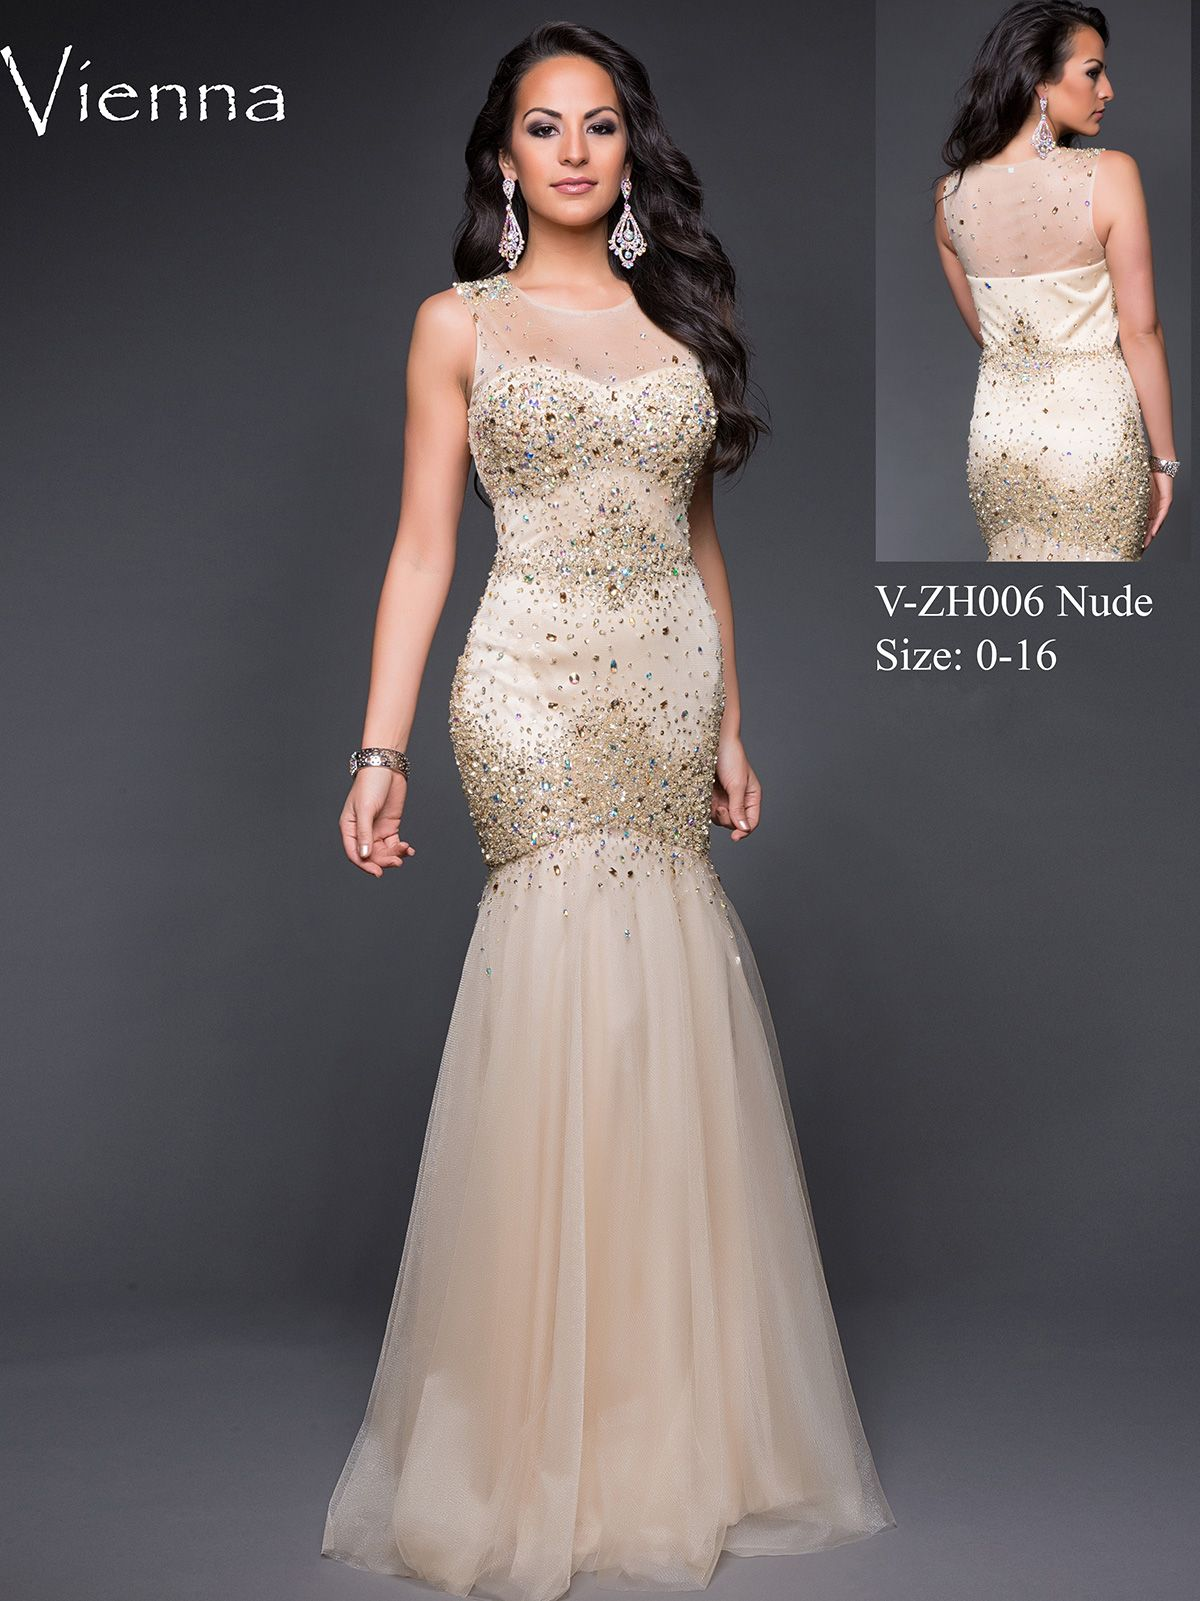 High Neck Sheer And Beaded Top Formal Prom Dress Vienna Zh006 Formal Dresses Prom High Neck Prom Dress Dresses [ 1601 x 1200 Pixel ]